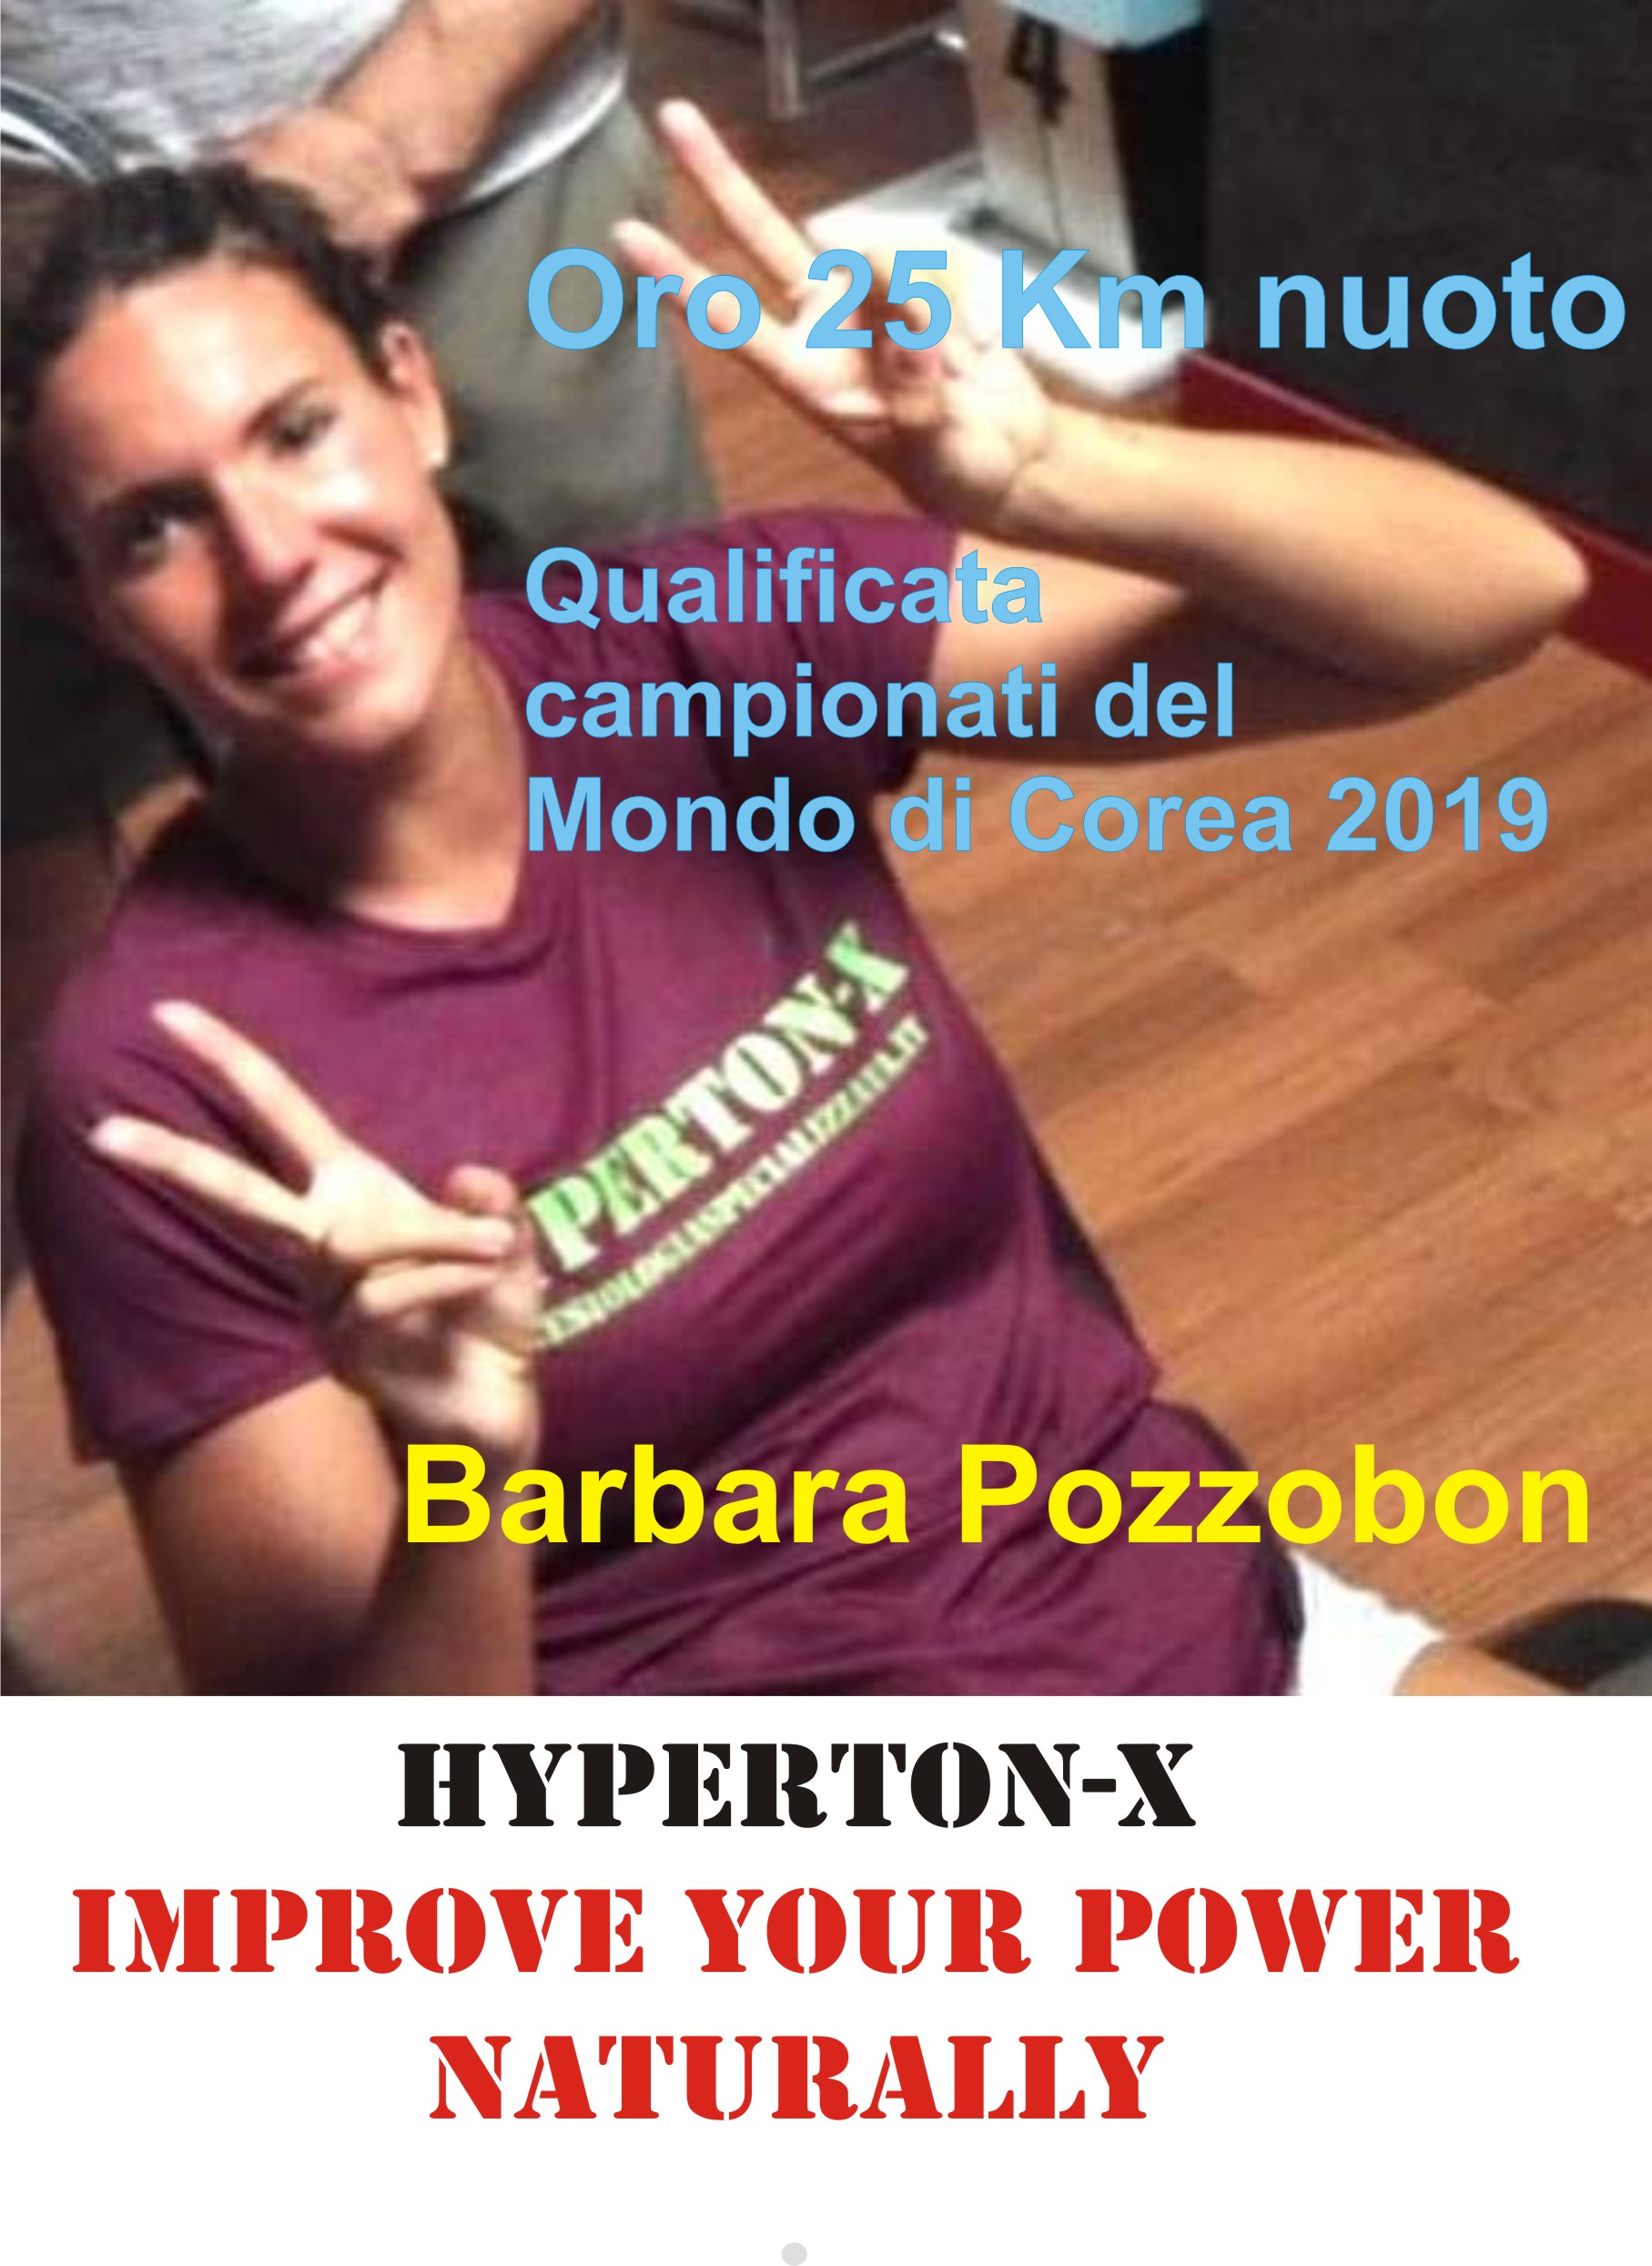 Barbara Pozzobon FB